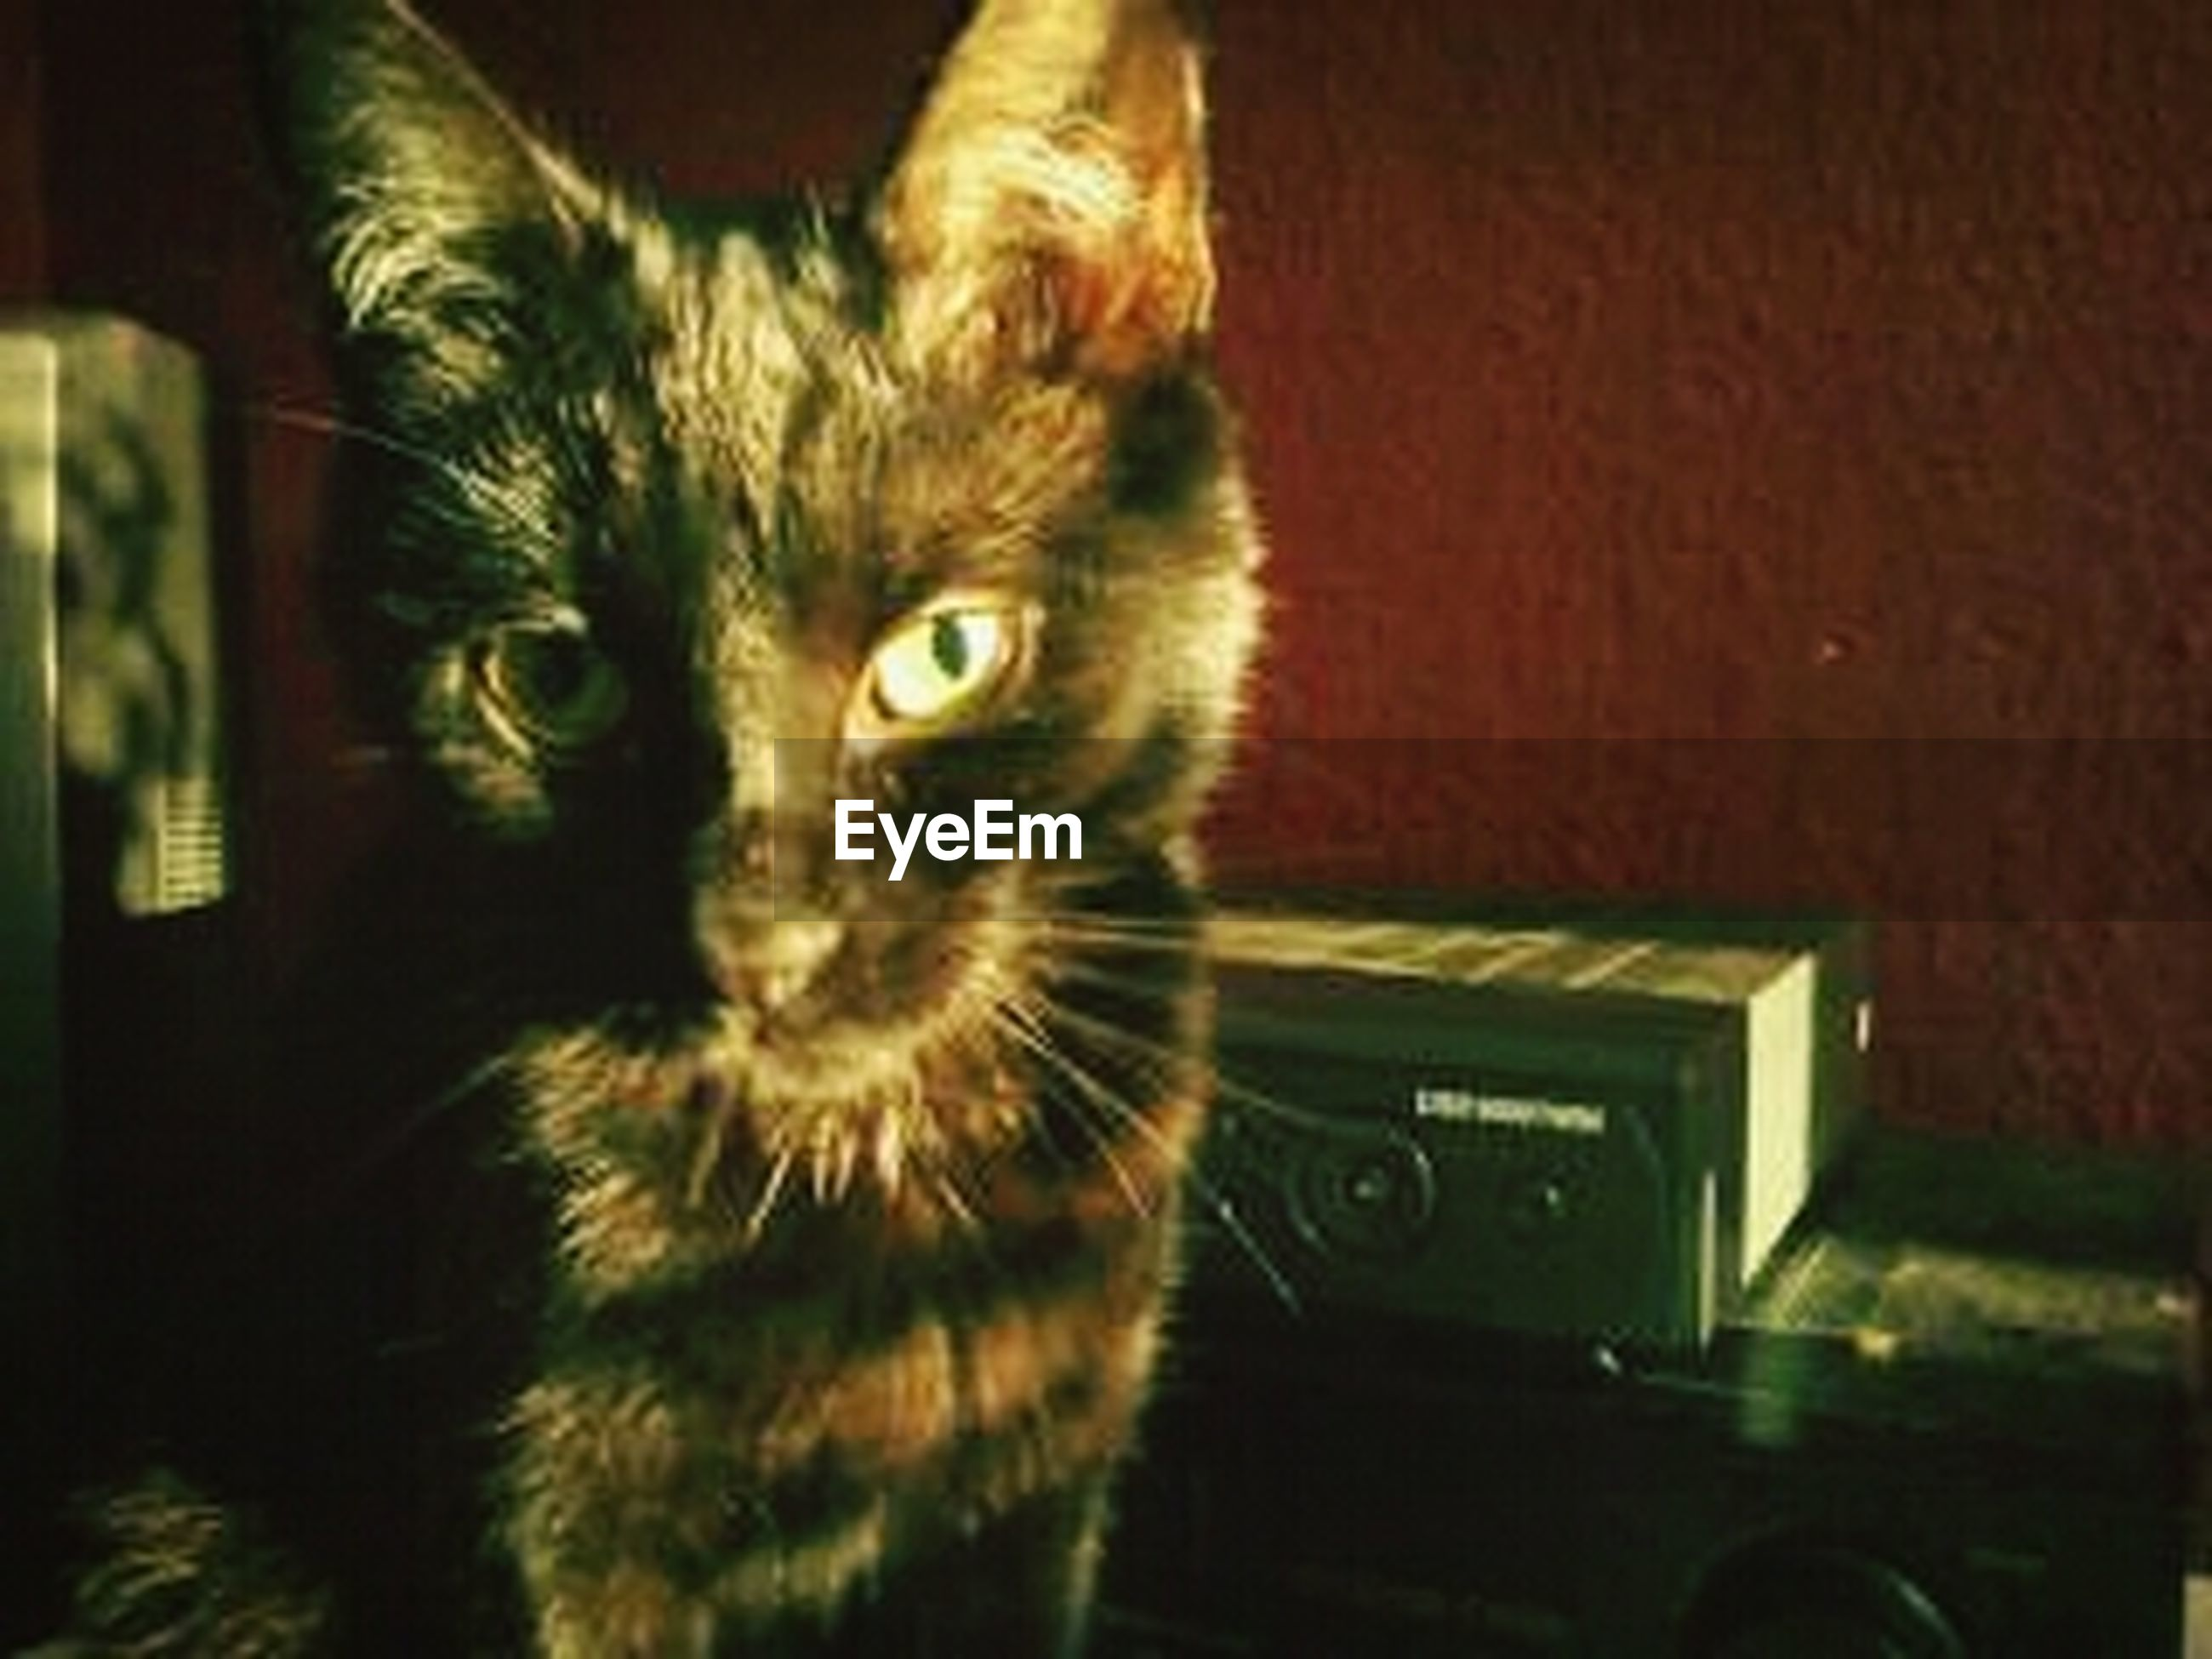 domestic cat, one animal, pets, domestic animals, cat, animal themes, indoors, feline, mammal, looking at camera, whisker, portrait, close-up, animal eye, animal head, alertness, staring, front view, no people